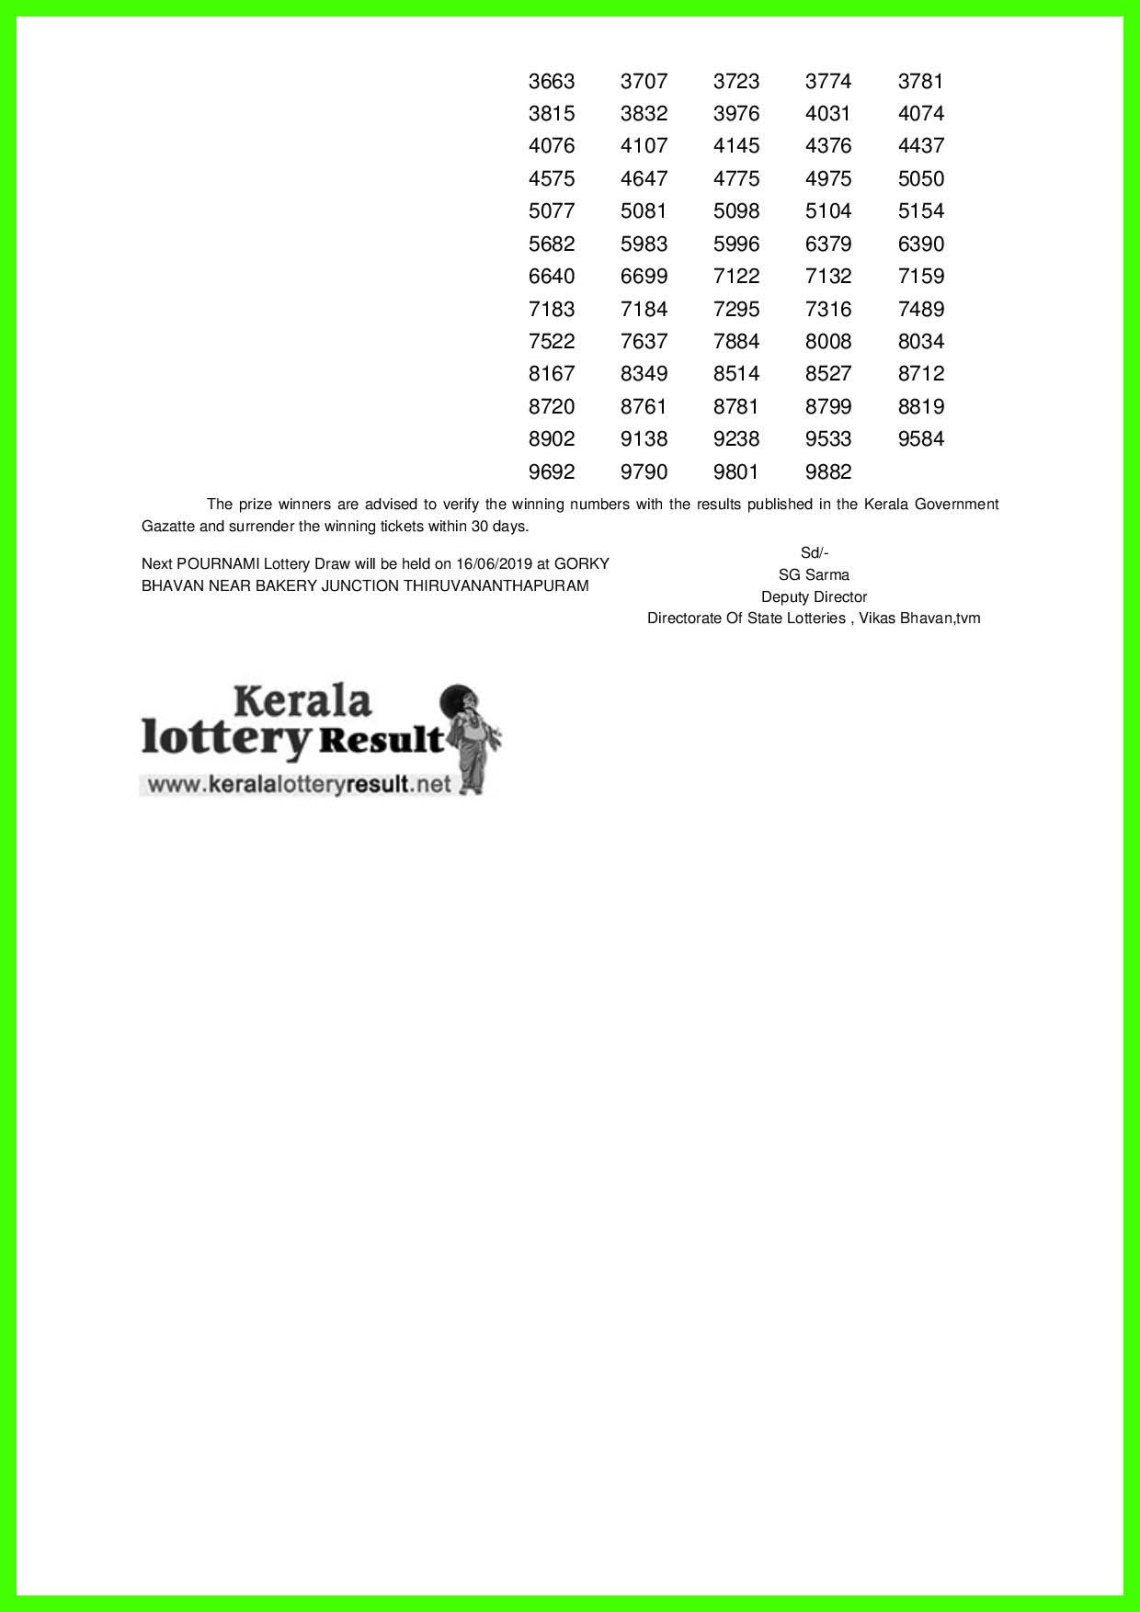 POURNAMI LOTTERY NO. RN-395th DRAW held on 09.06.2019-page-002